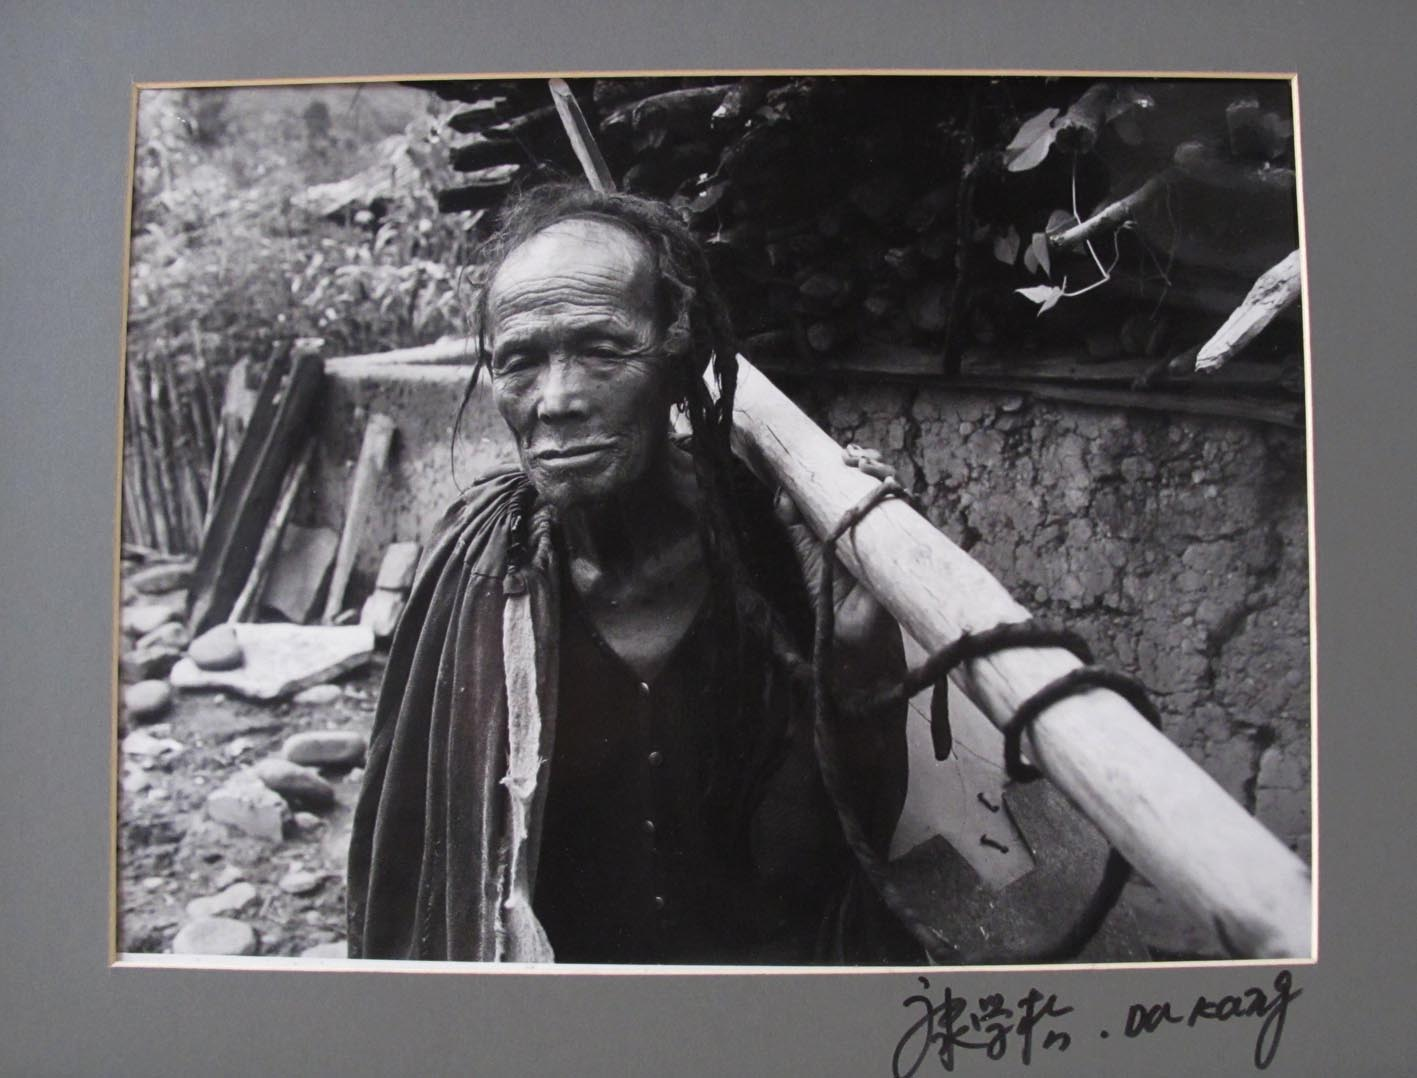 DA KANG. - Miao. Older man with wooden tool.